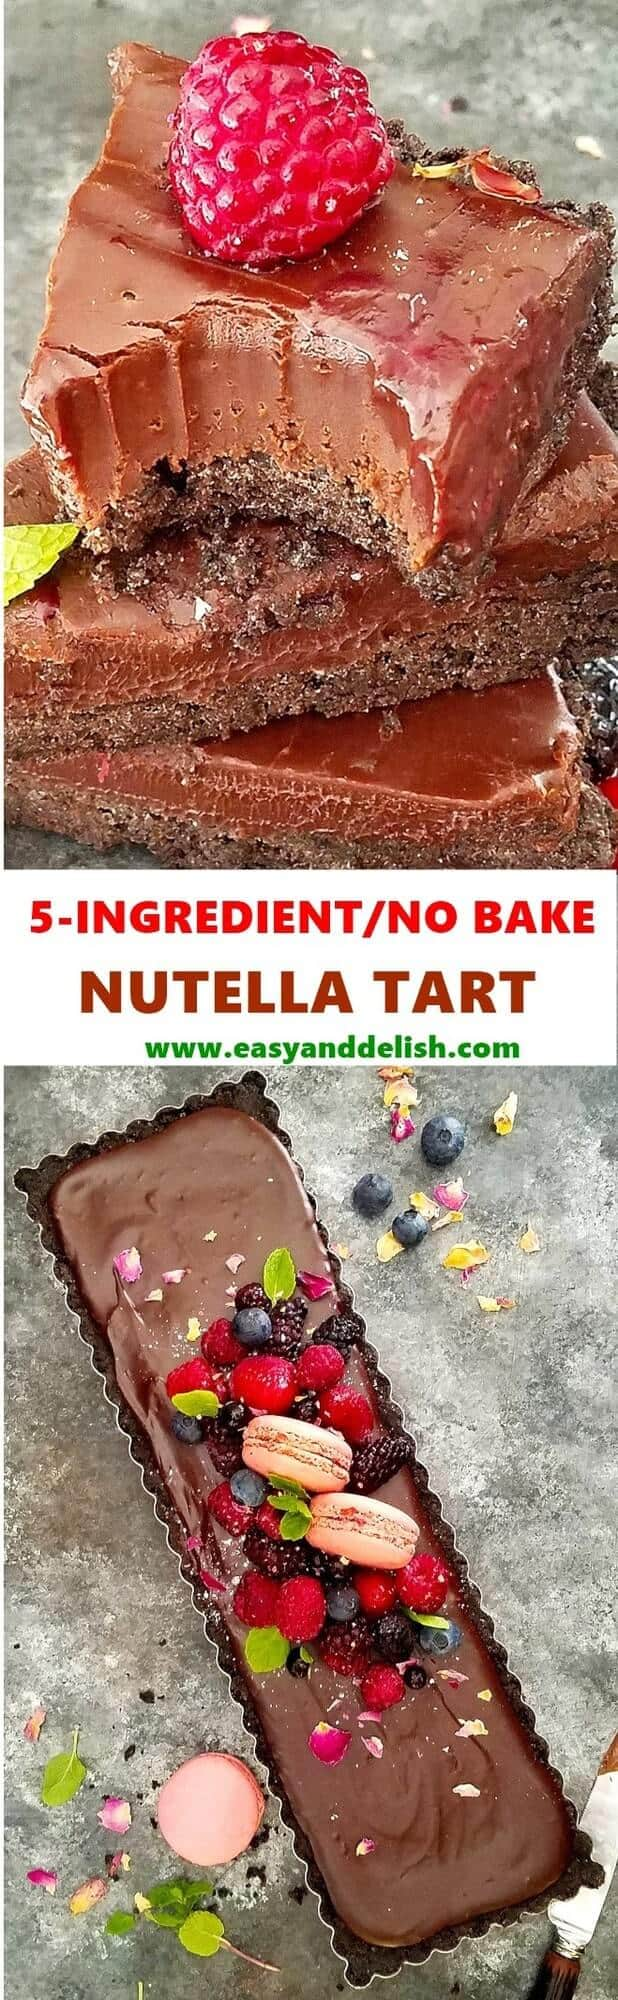 Combined close up image of No Bake Nutella Tart, sliced and piled on the top and whole tart on the bottom.